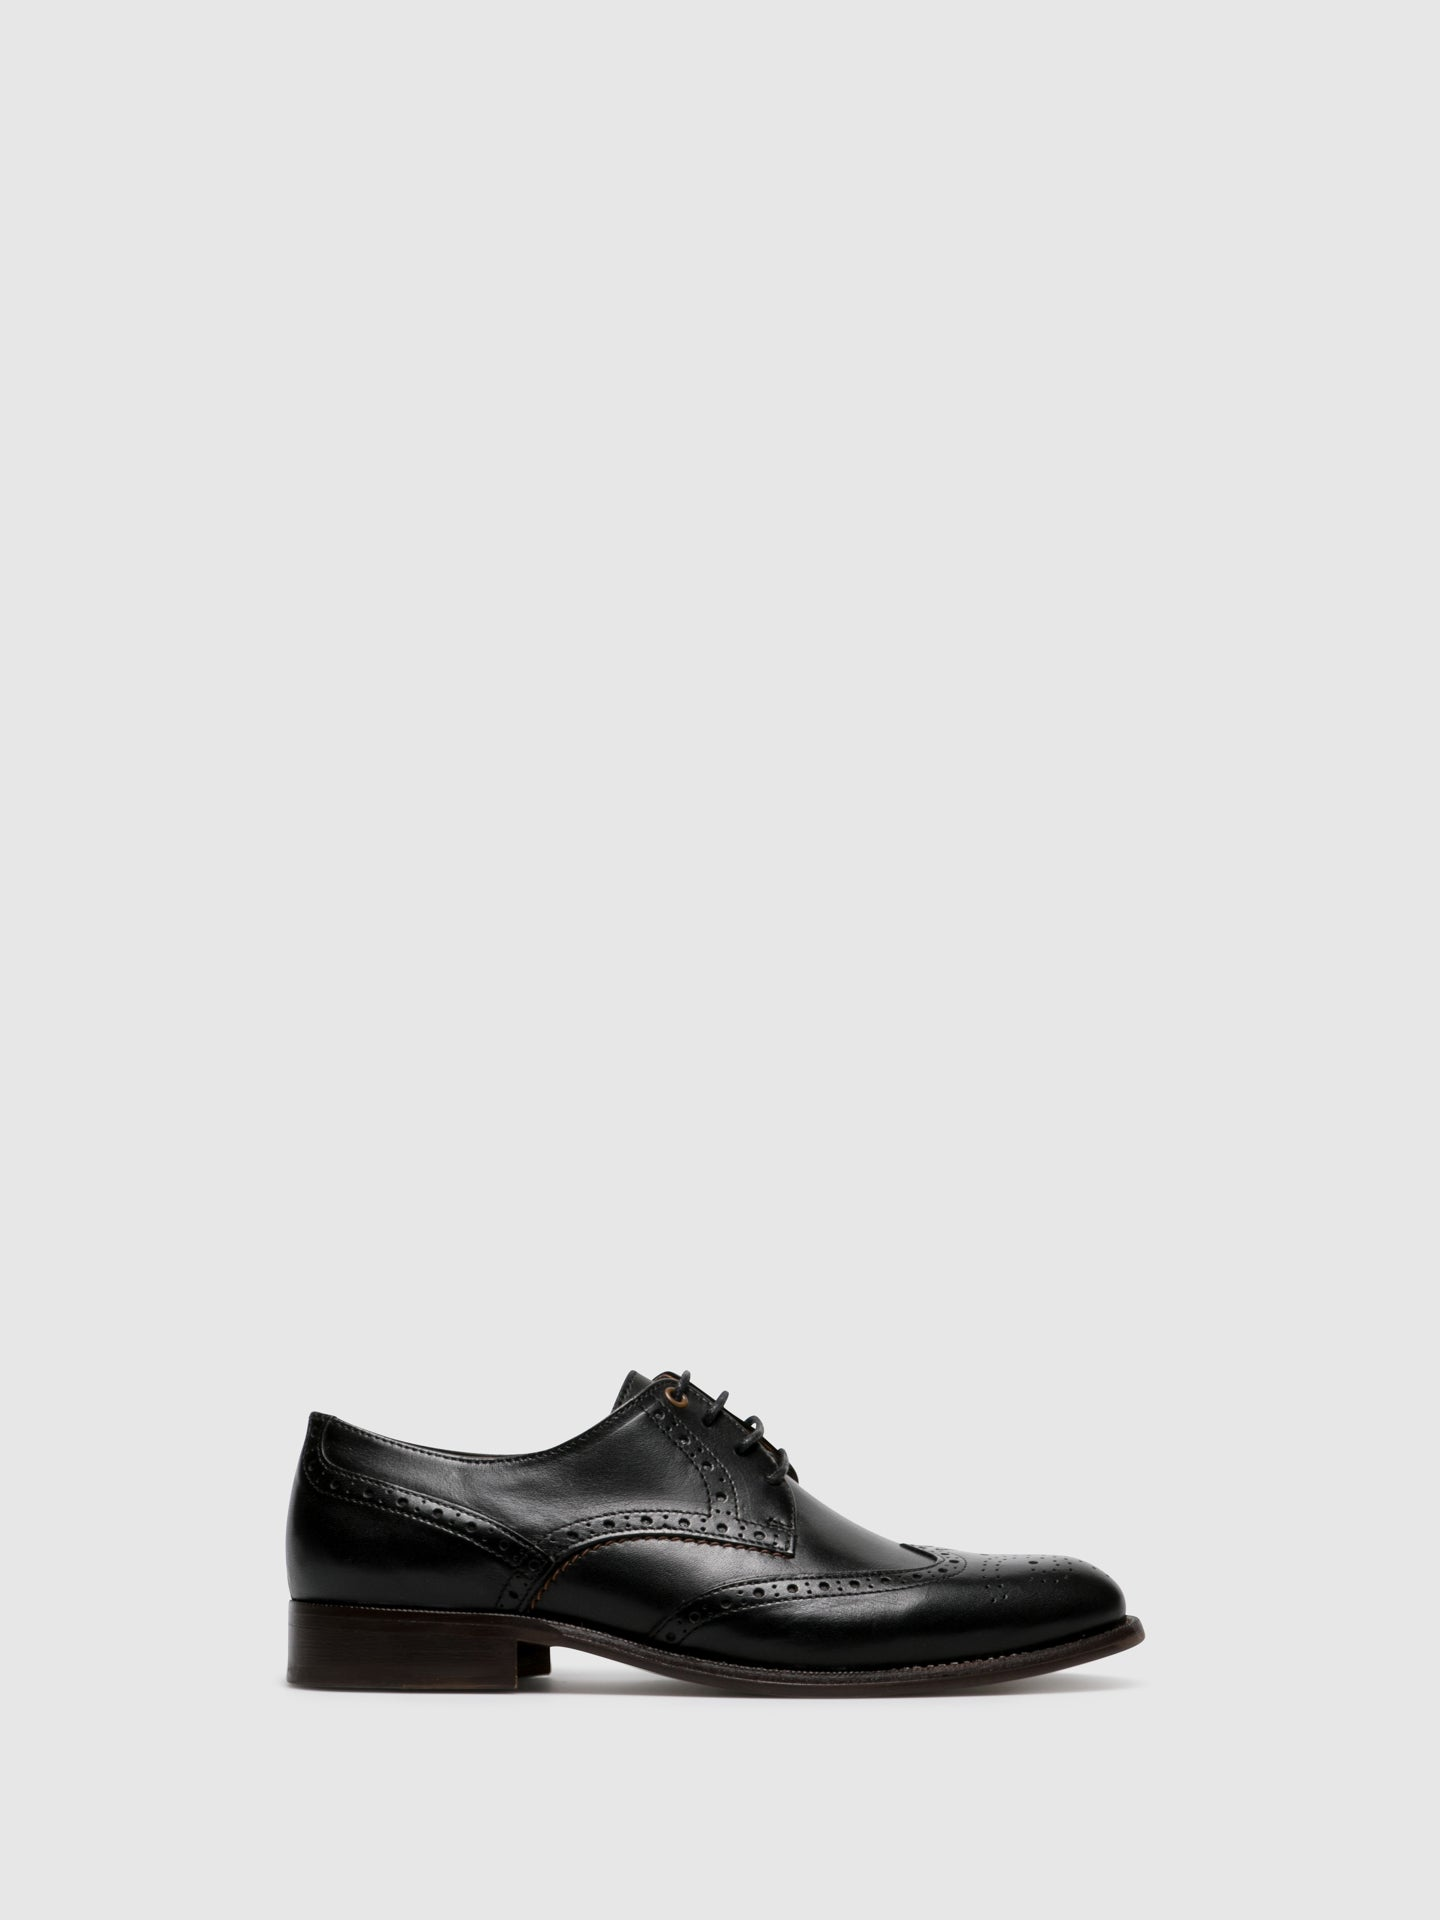 Foreva Black Oxford